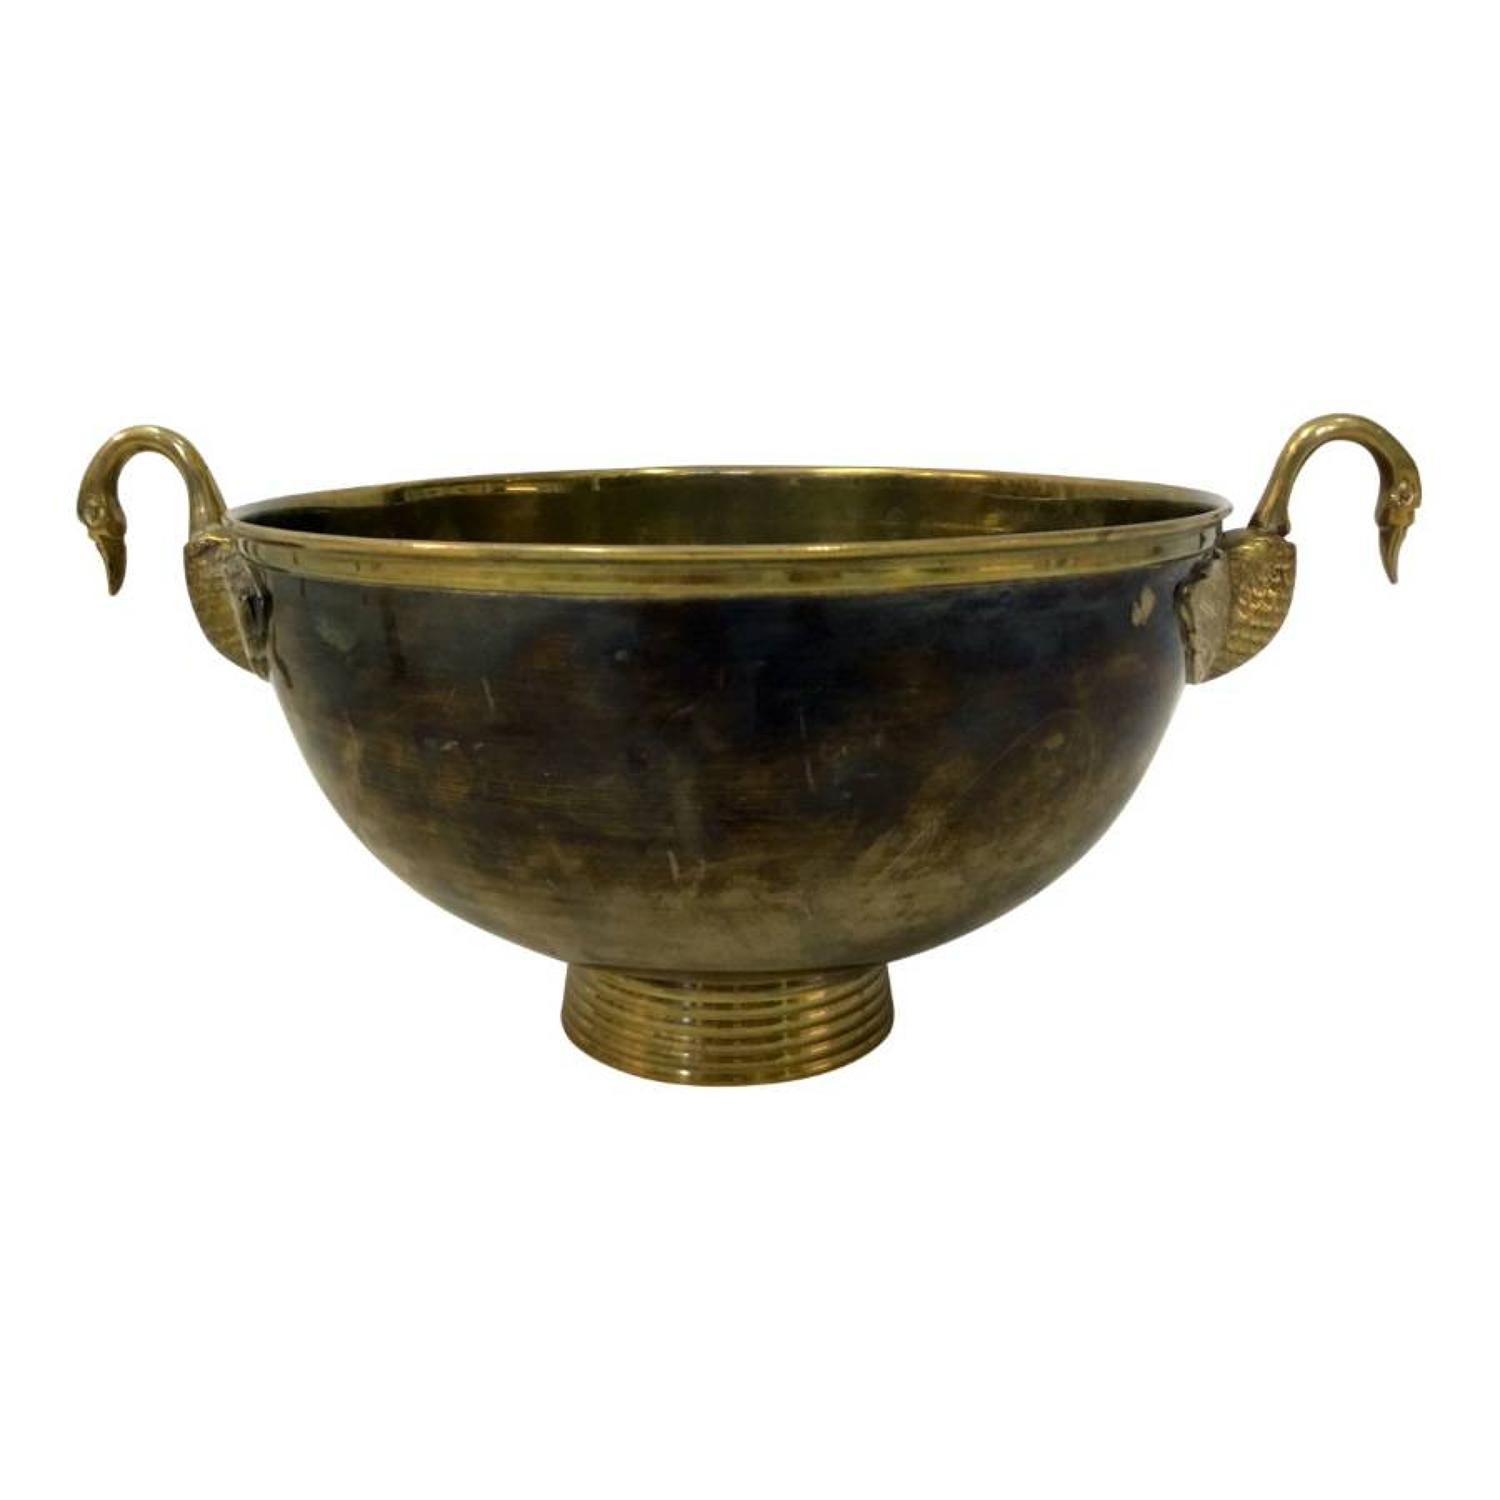 1970s brass bowl with swan handles